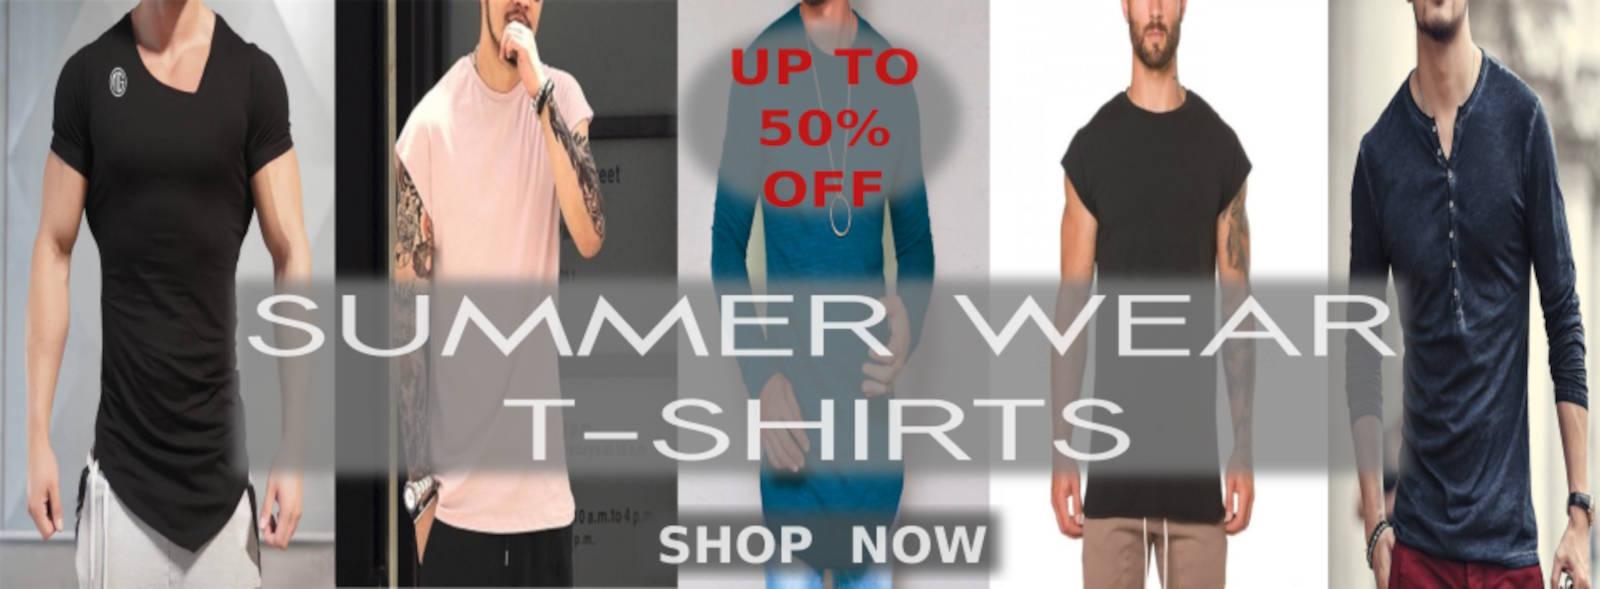 Buy Trending Designer Tops, T-Shirts, Sleeveless Vests, Cotton Shirts, Tanks, Under Shirts, Gym Outfits, Compression Shirts And Cool Summer Beach Clothing For Men At Big Discounts Of Up To 50% Off On Shopperwear Fashion